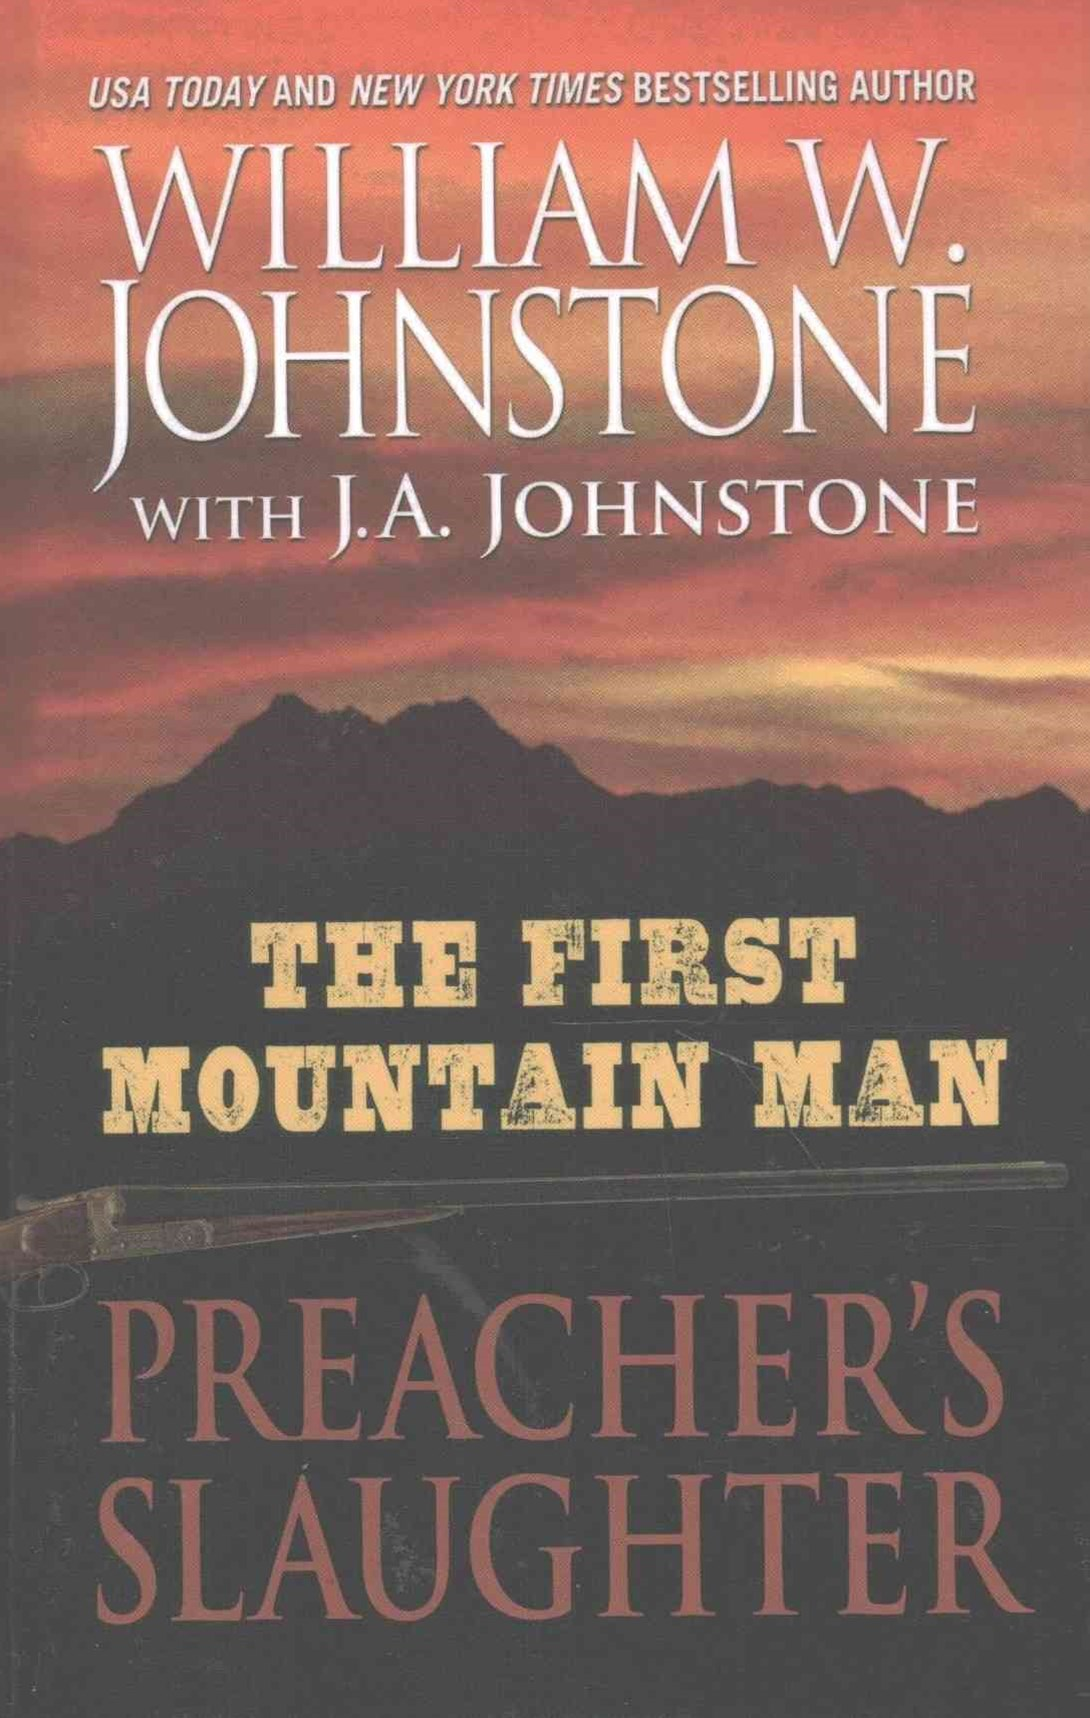 The First Mountain Man Preacher's Slaughter